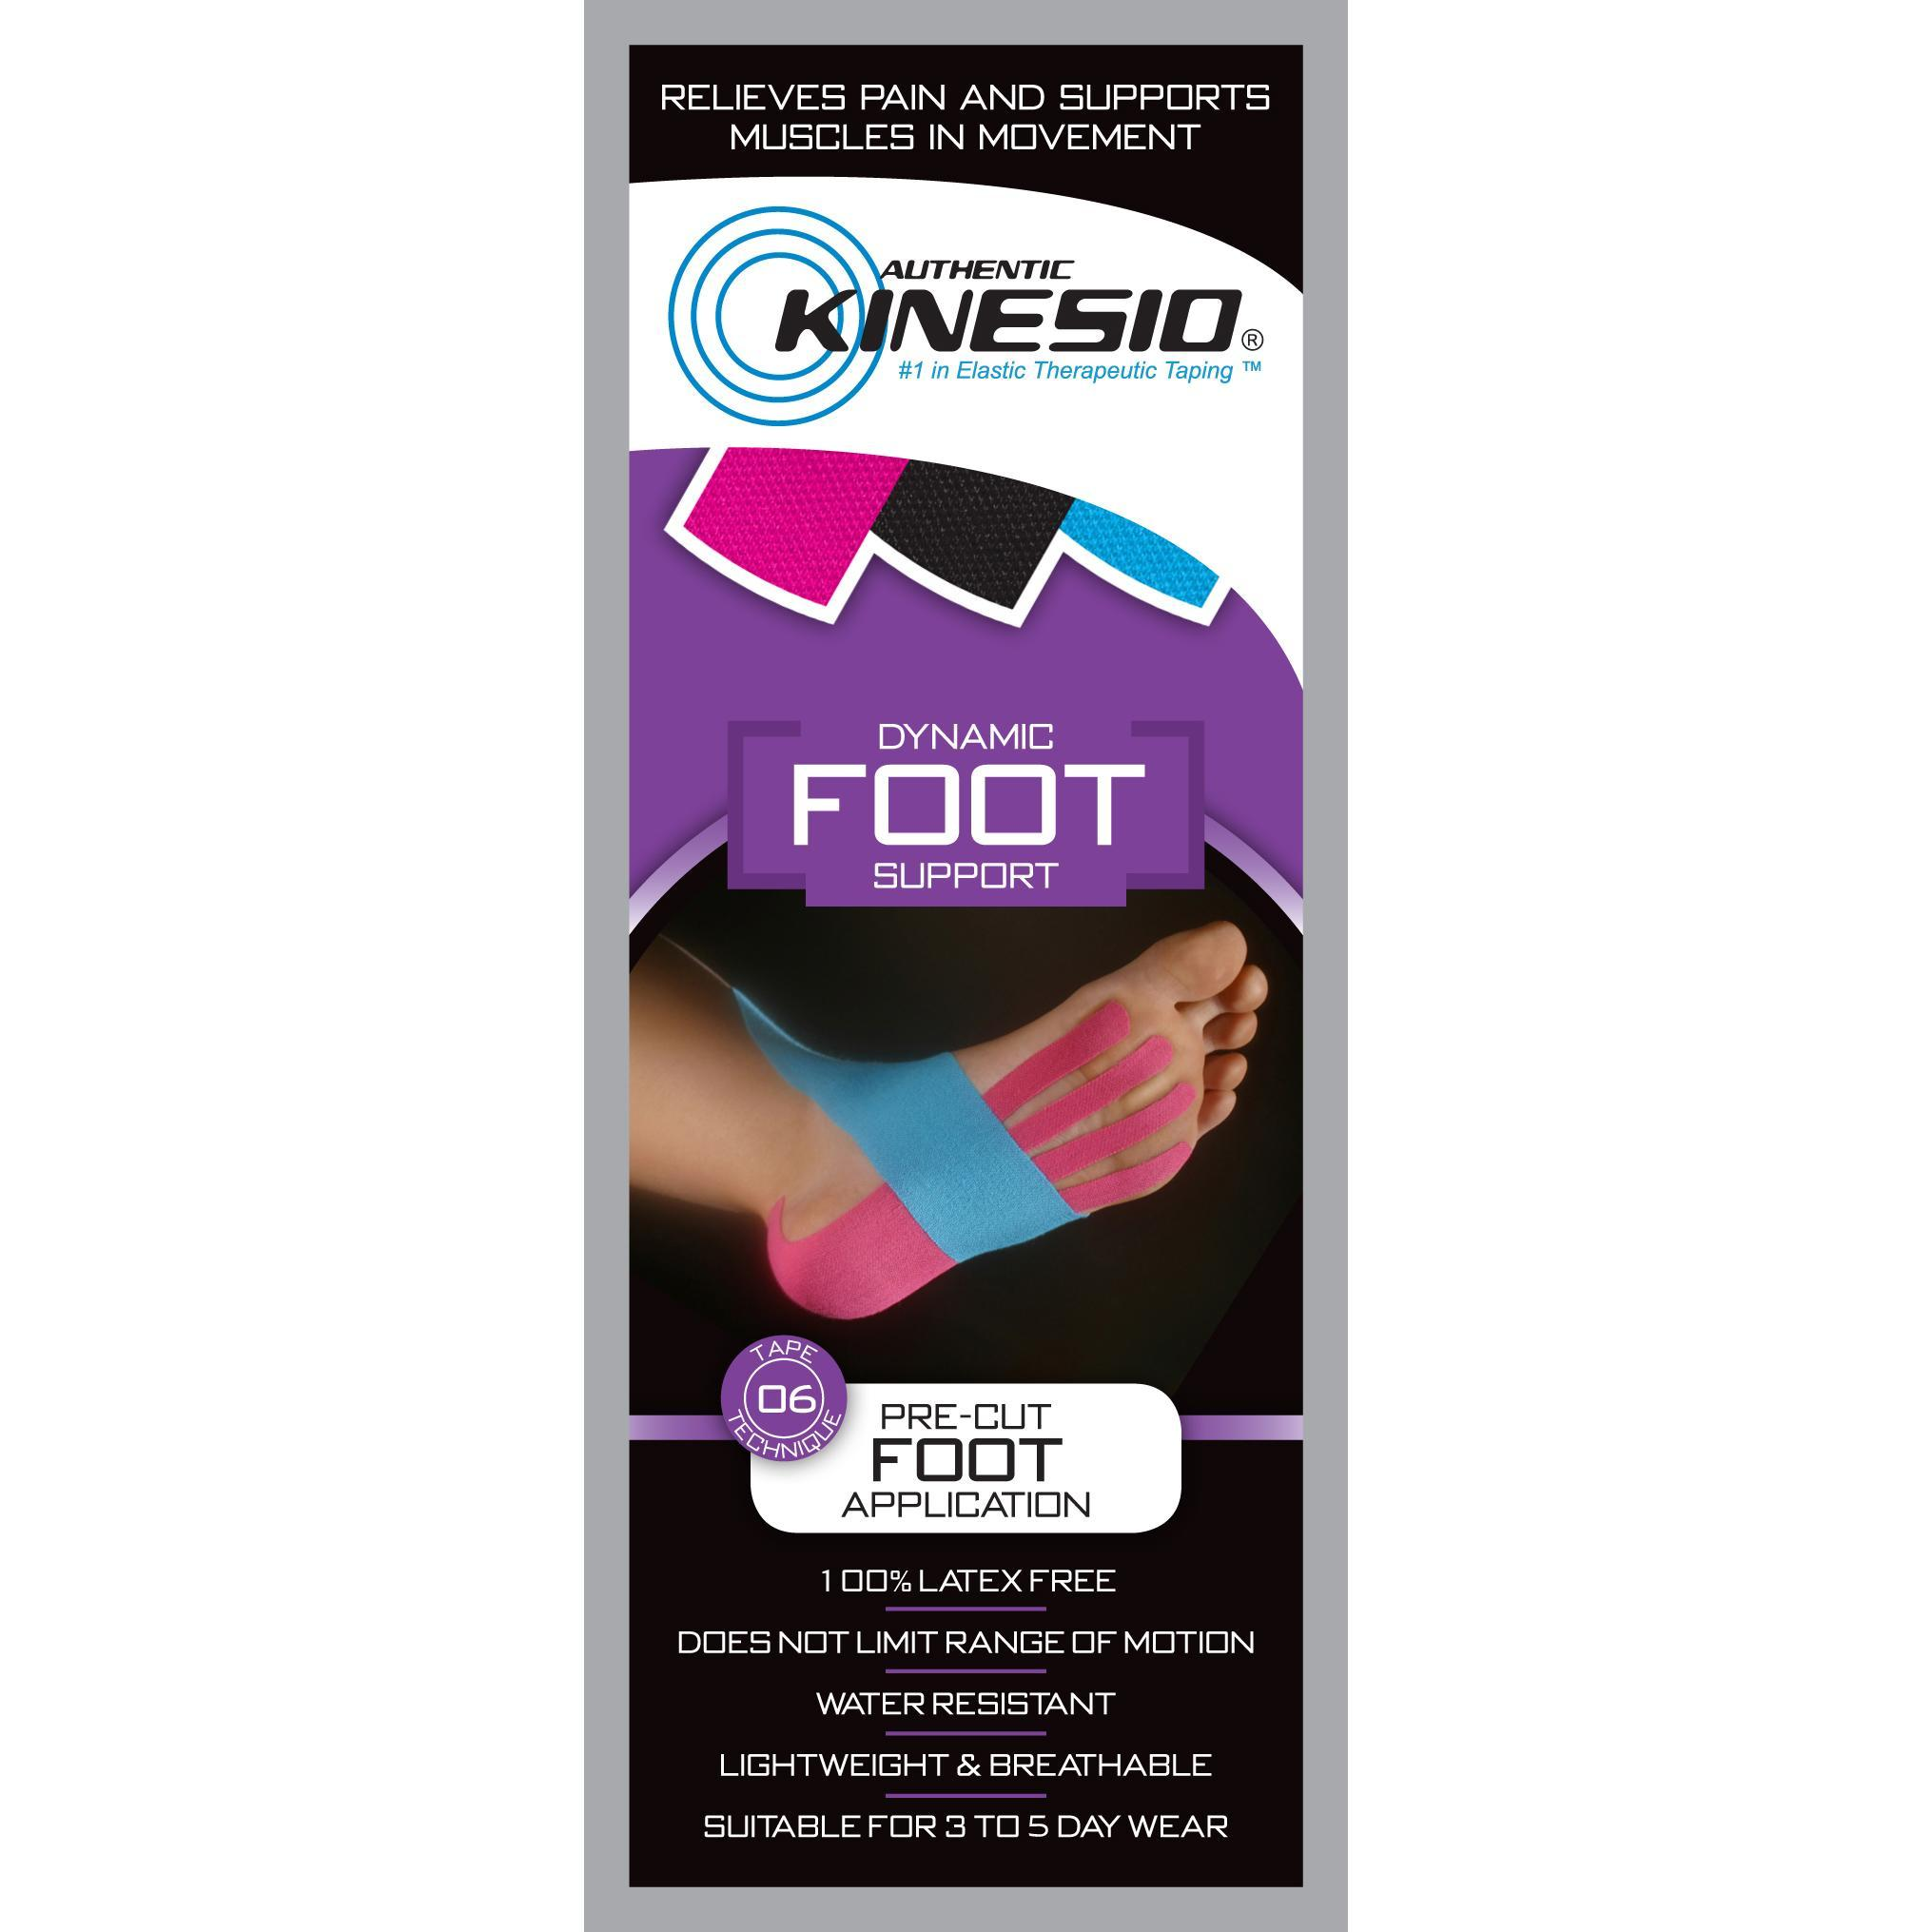 Kinesio Dynamic Foot Support